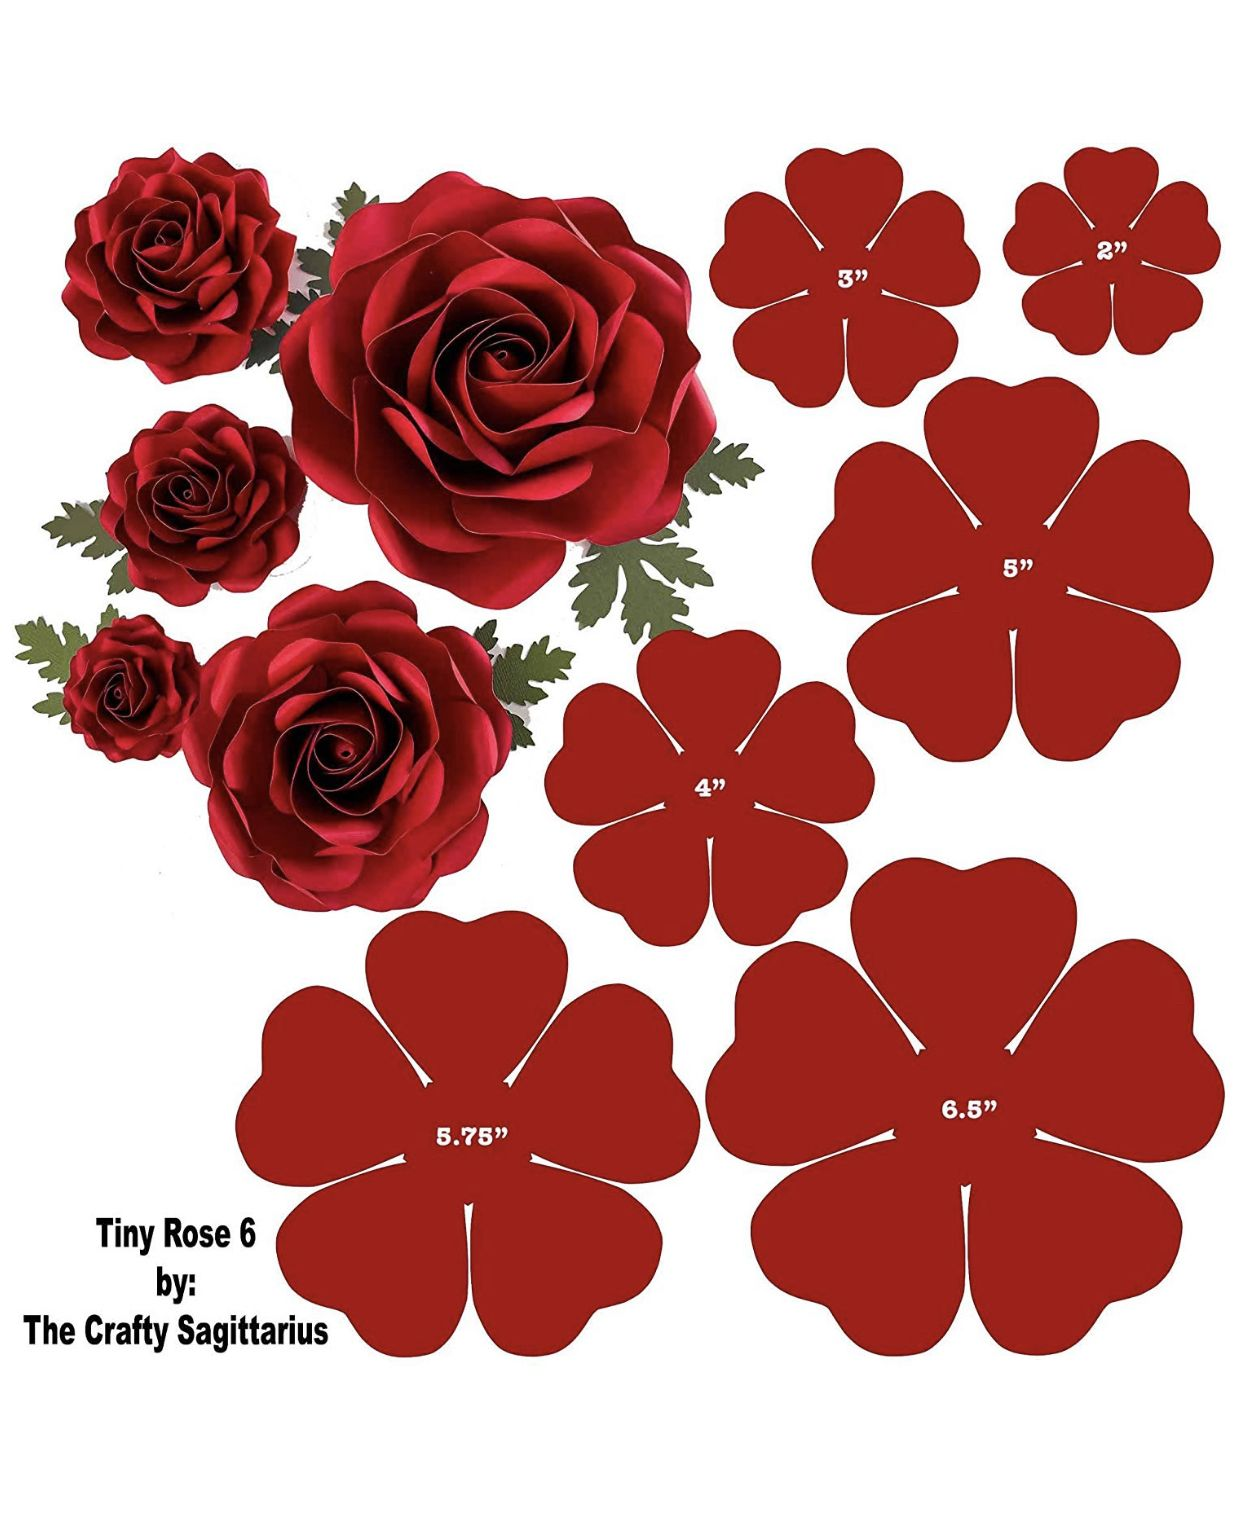 Hard Copy Template Of 6 Sizes Tiny Rose 6 Available In Amazon Paper Flowers Craft Giant Paper Flowers Large Paper Flowers